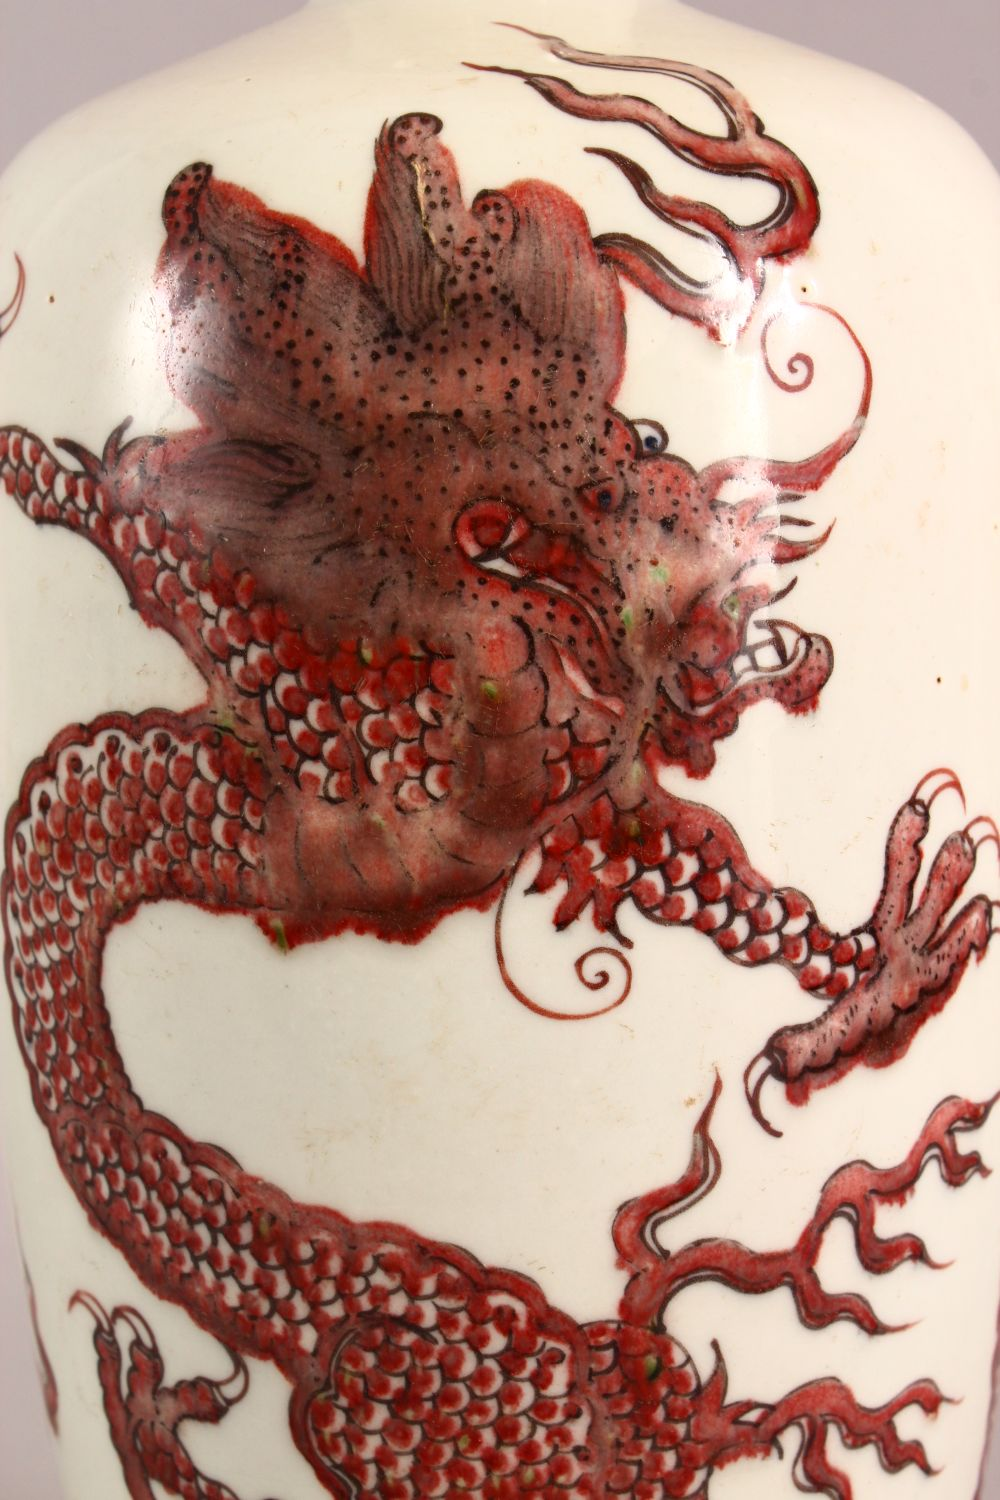 A CHINESE IRON RED DRAGON VASE, the body painted with two dragons and the pearl of wisdom, 33cm - Image 4 of 6